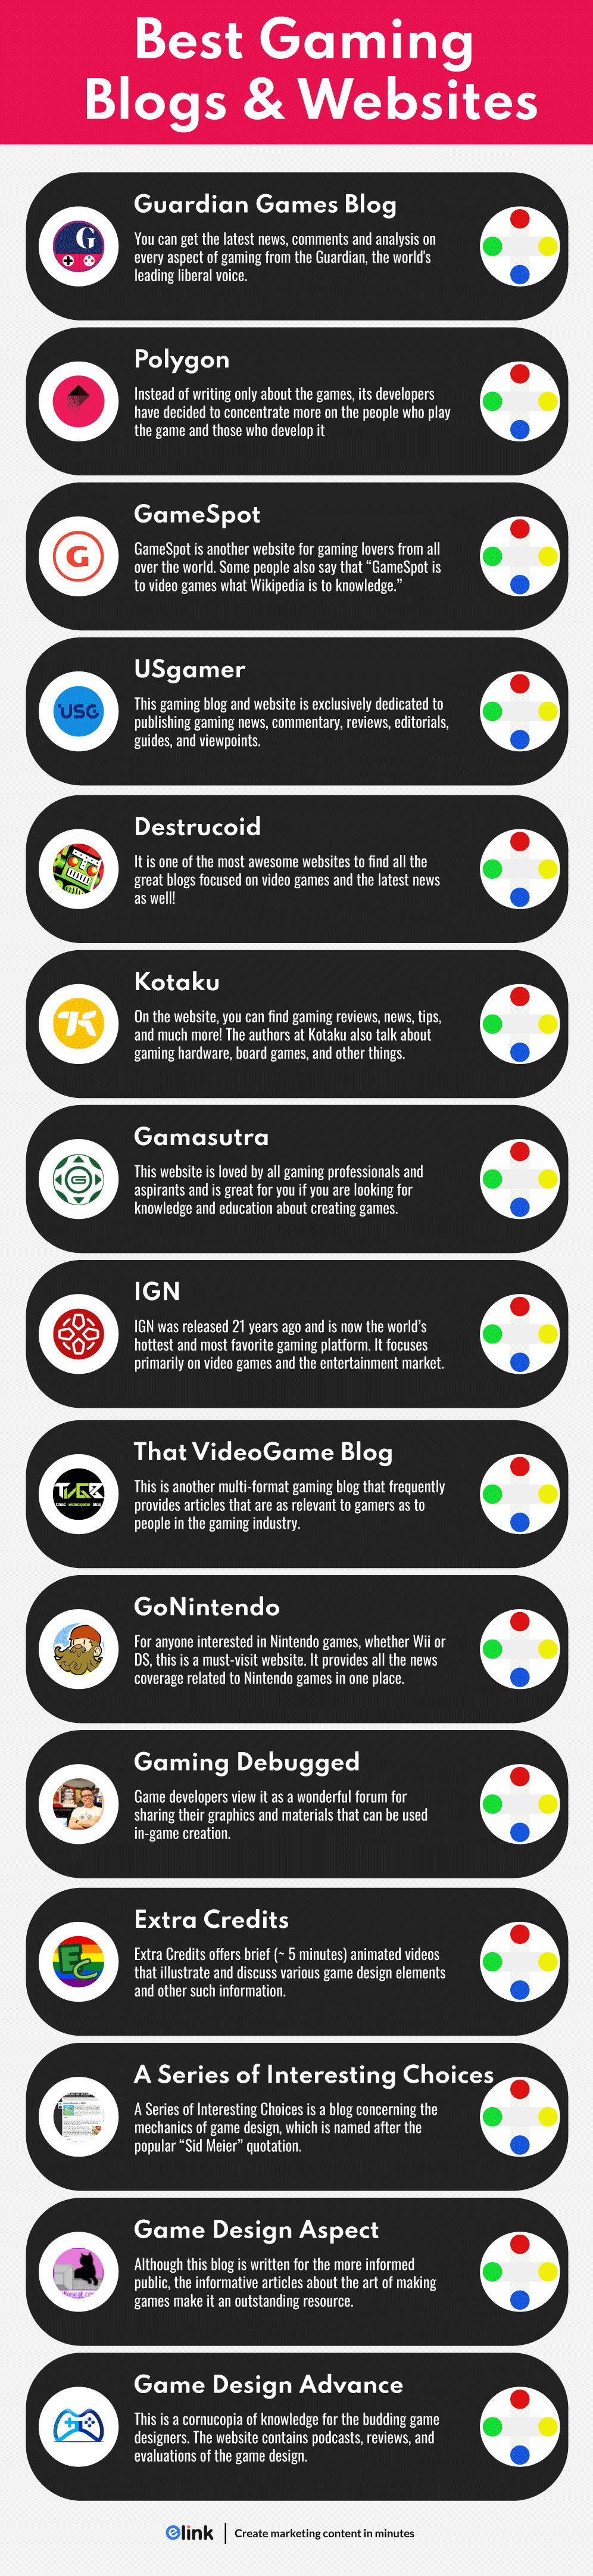 Gaming blogs and websites infographic